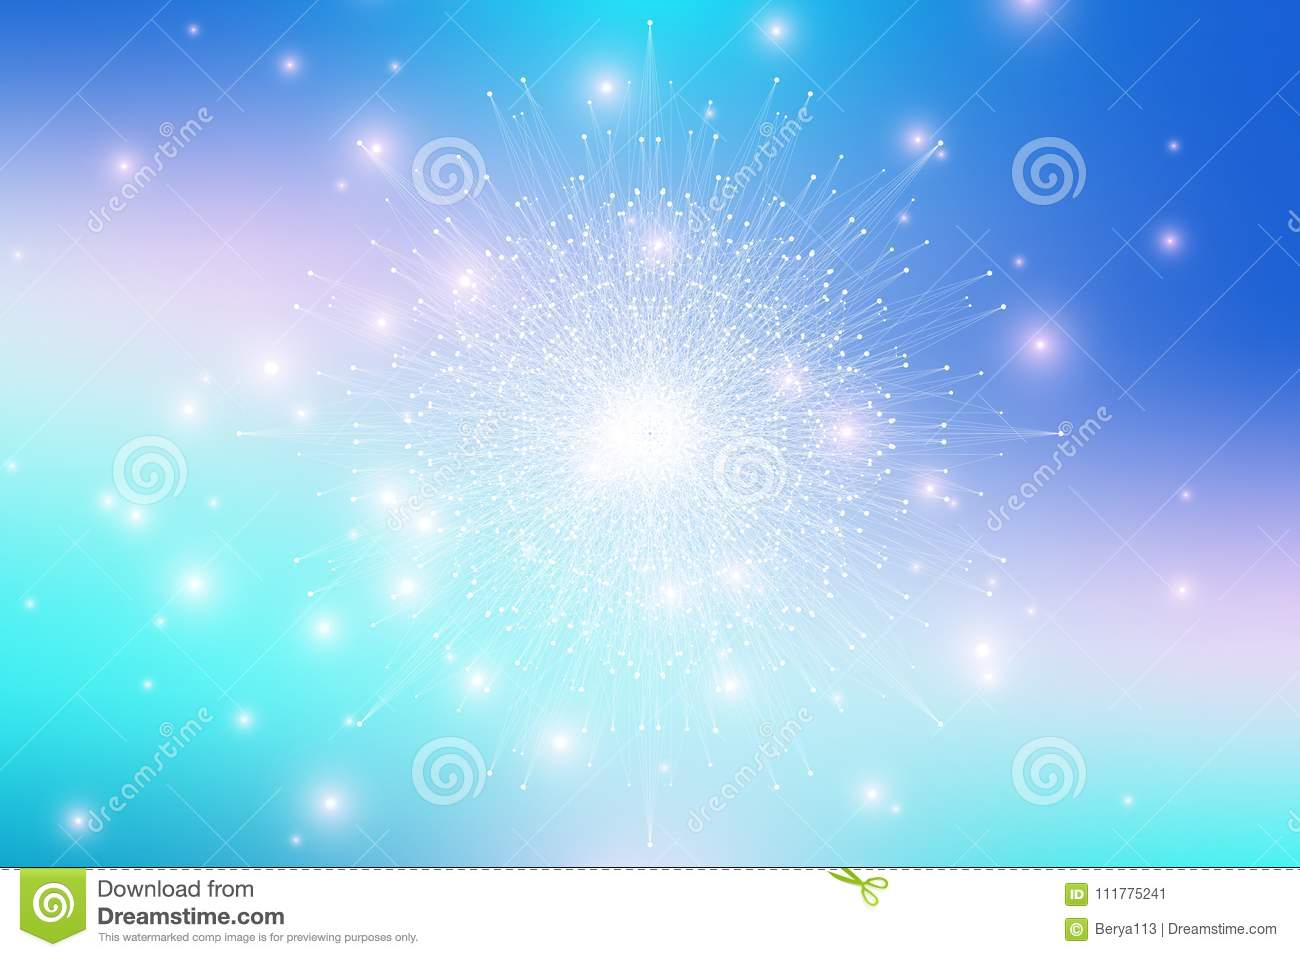 Fractal element with compounds lines and dots. Big data complex. Graphic abstract background communication. Minimal